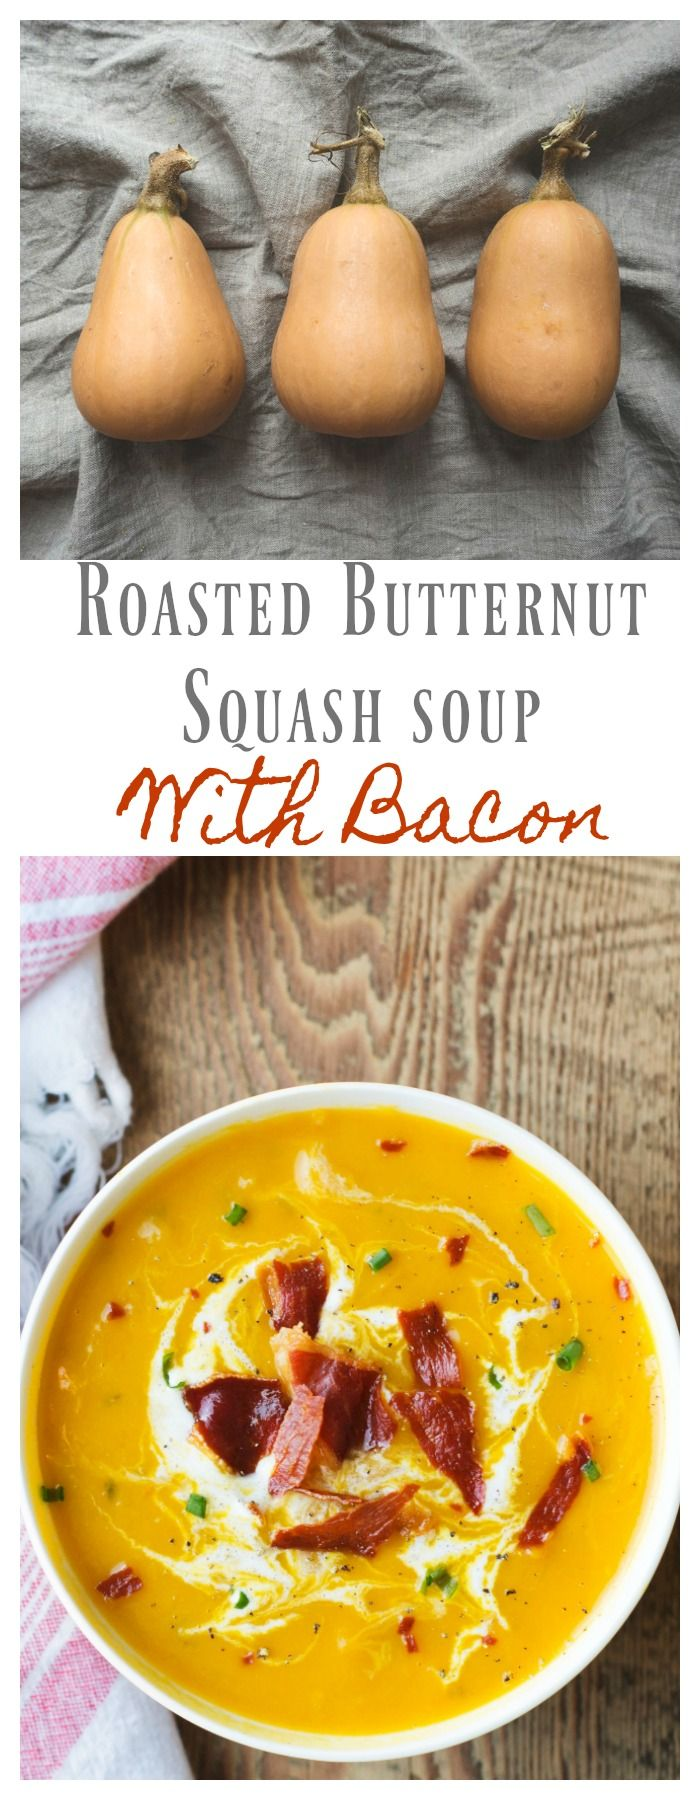 Roasted Butternut Squash Soup with Bacon - The Cooking Housewives - 2 Bees in a Pod